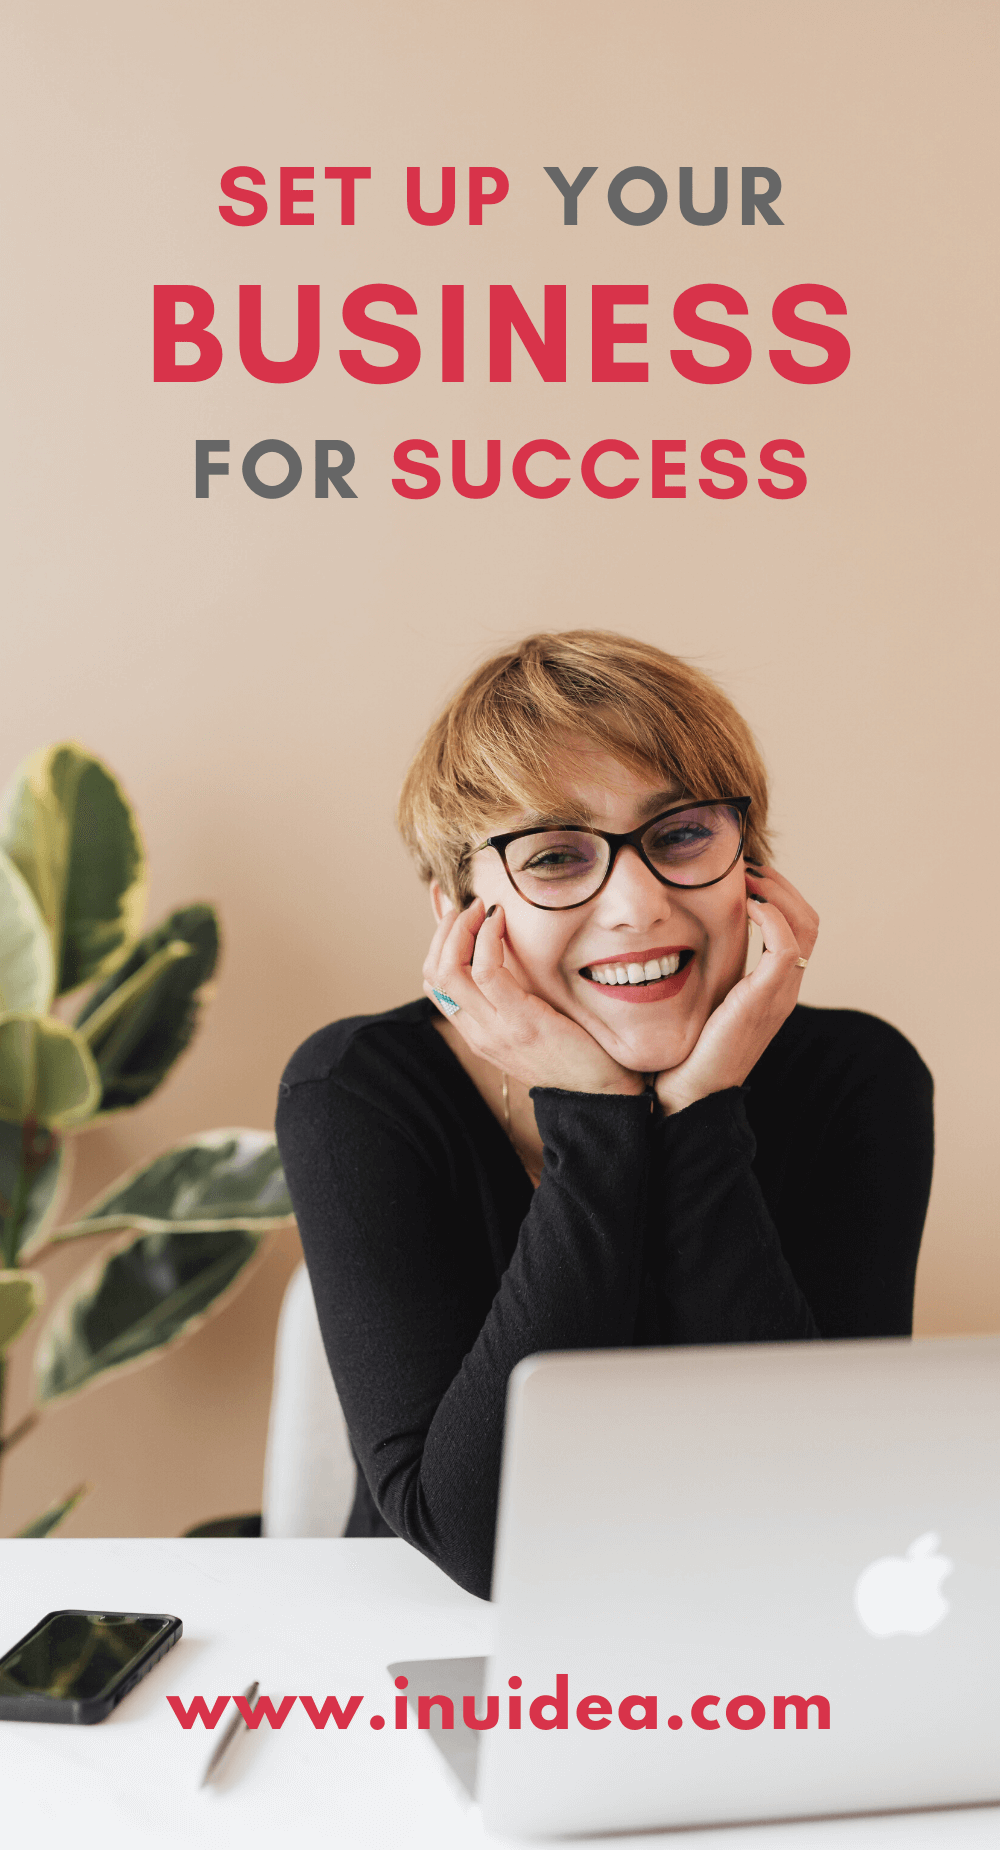 How to Set up Your Business for Success